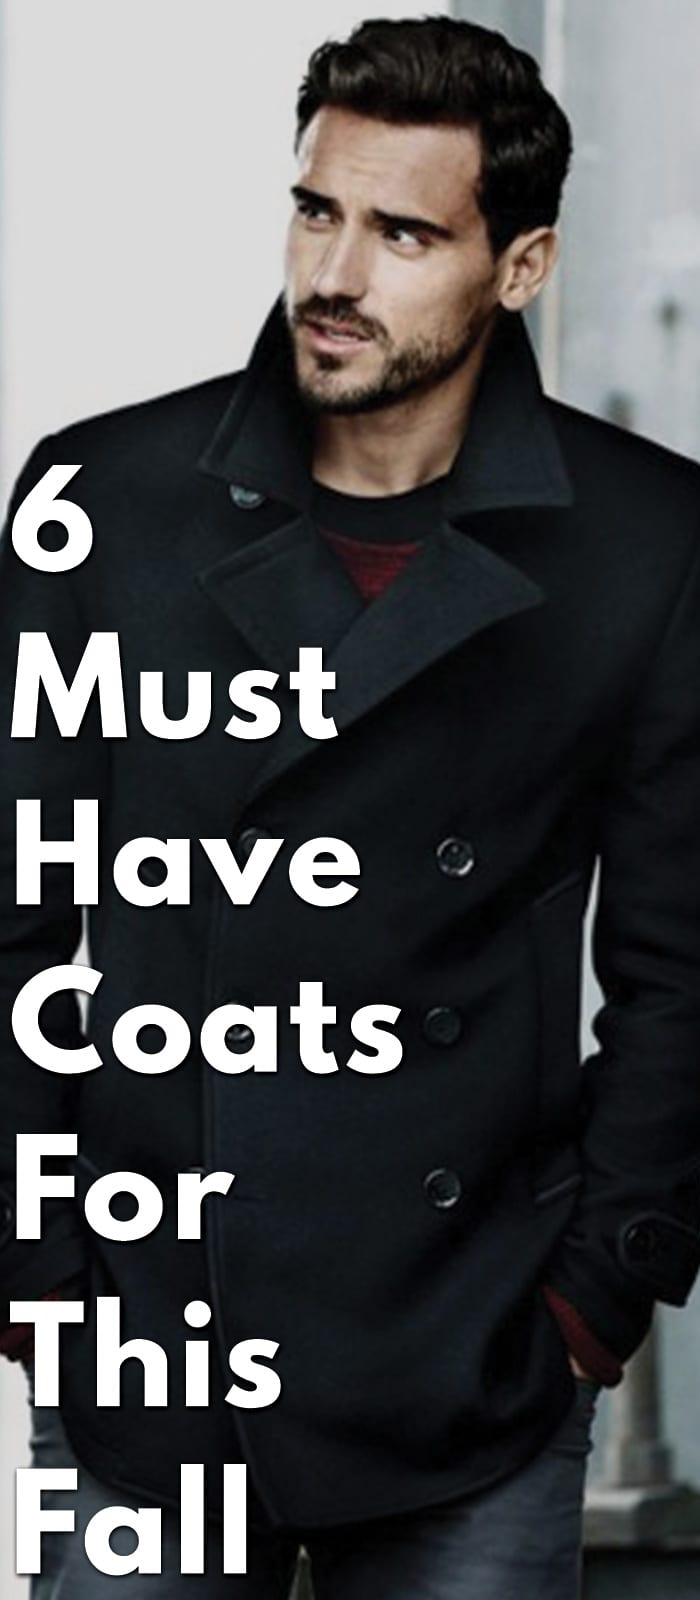 6-Must-Have-Coats-For-This-Fall